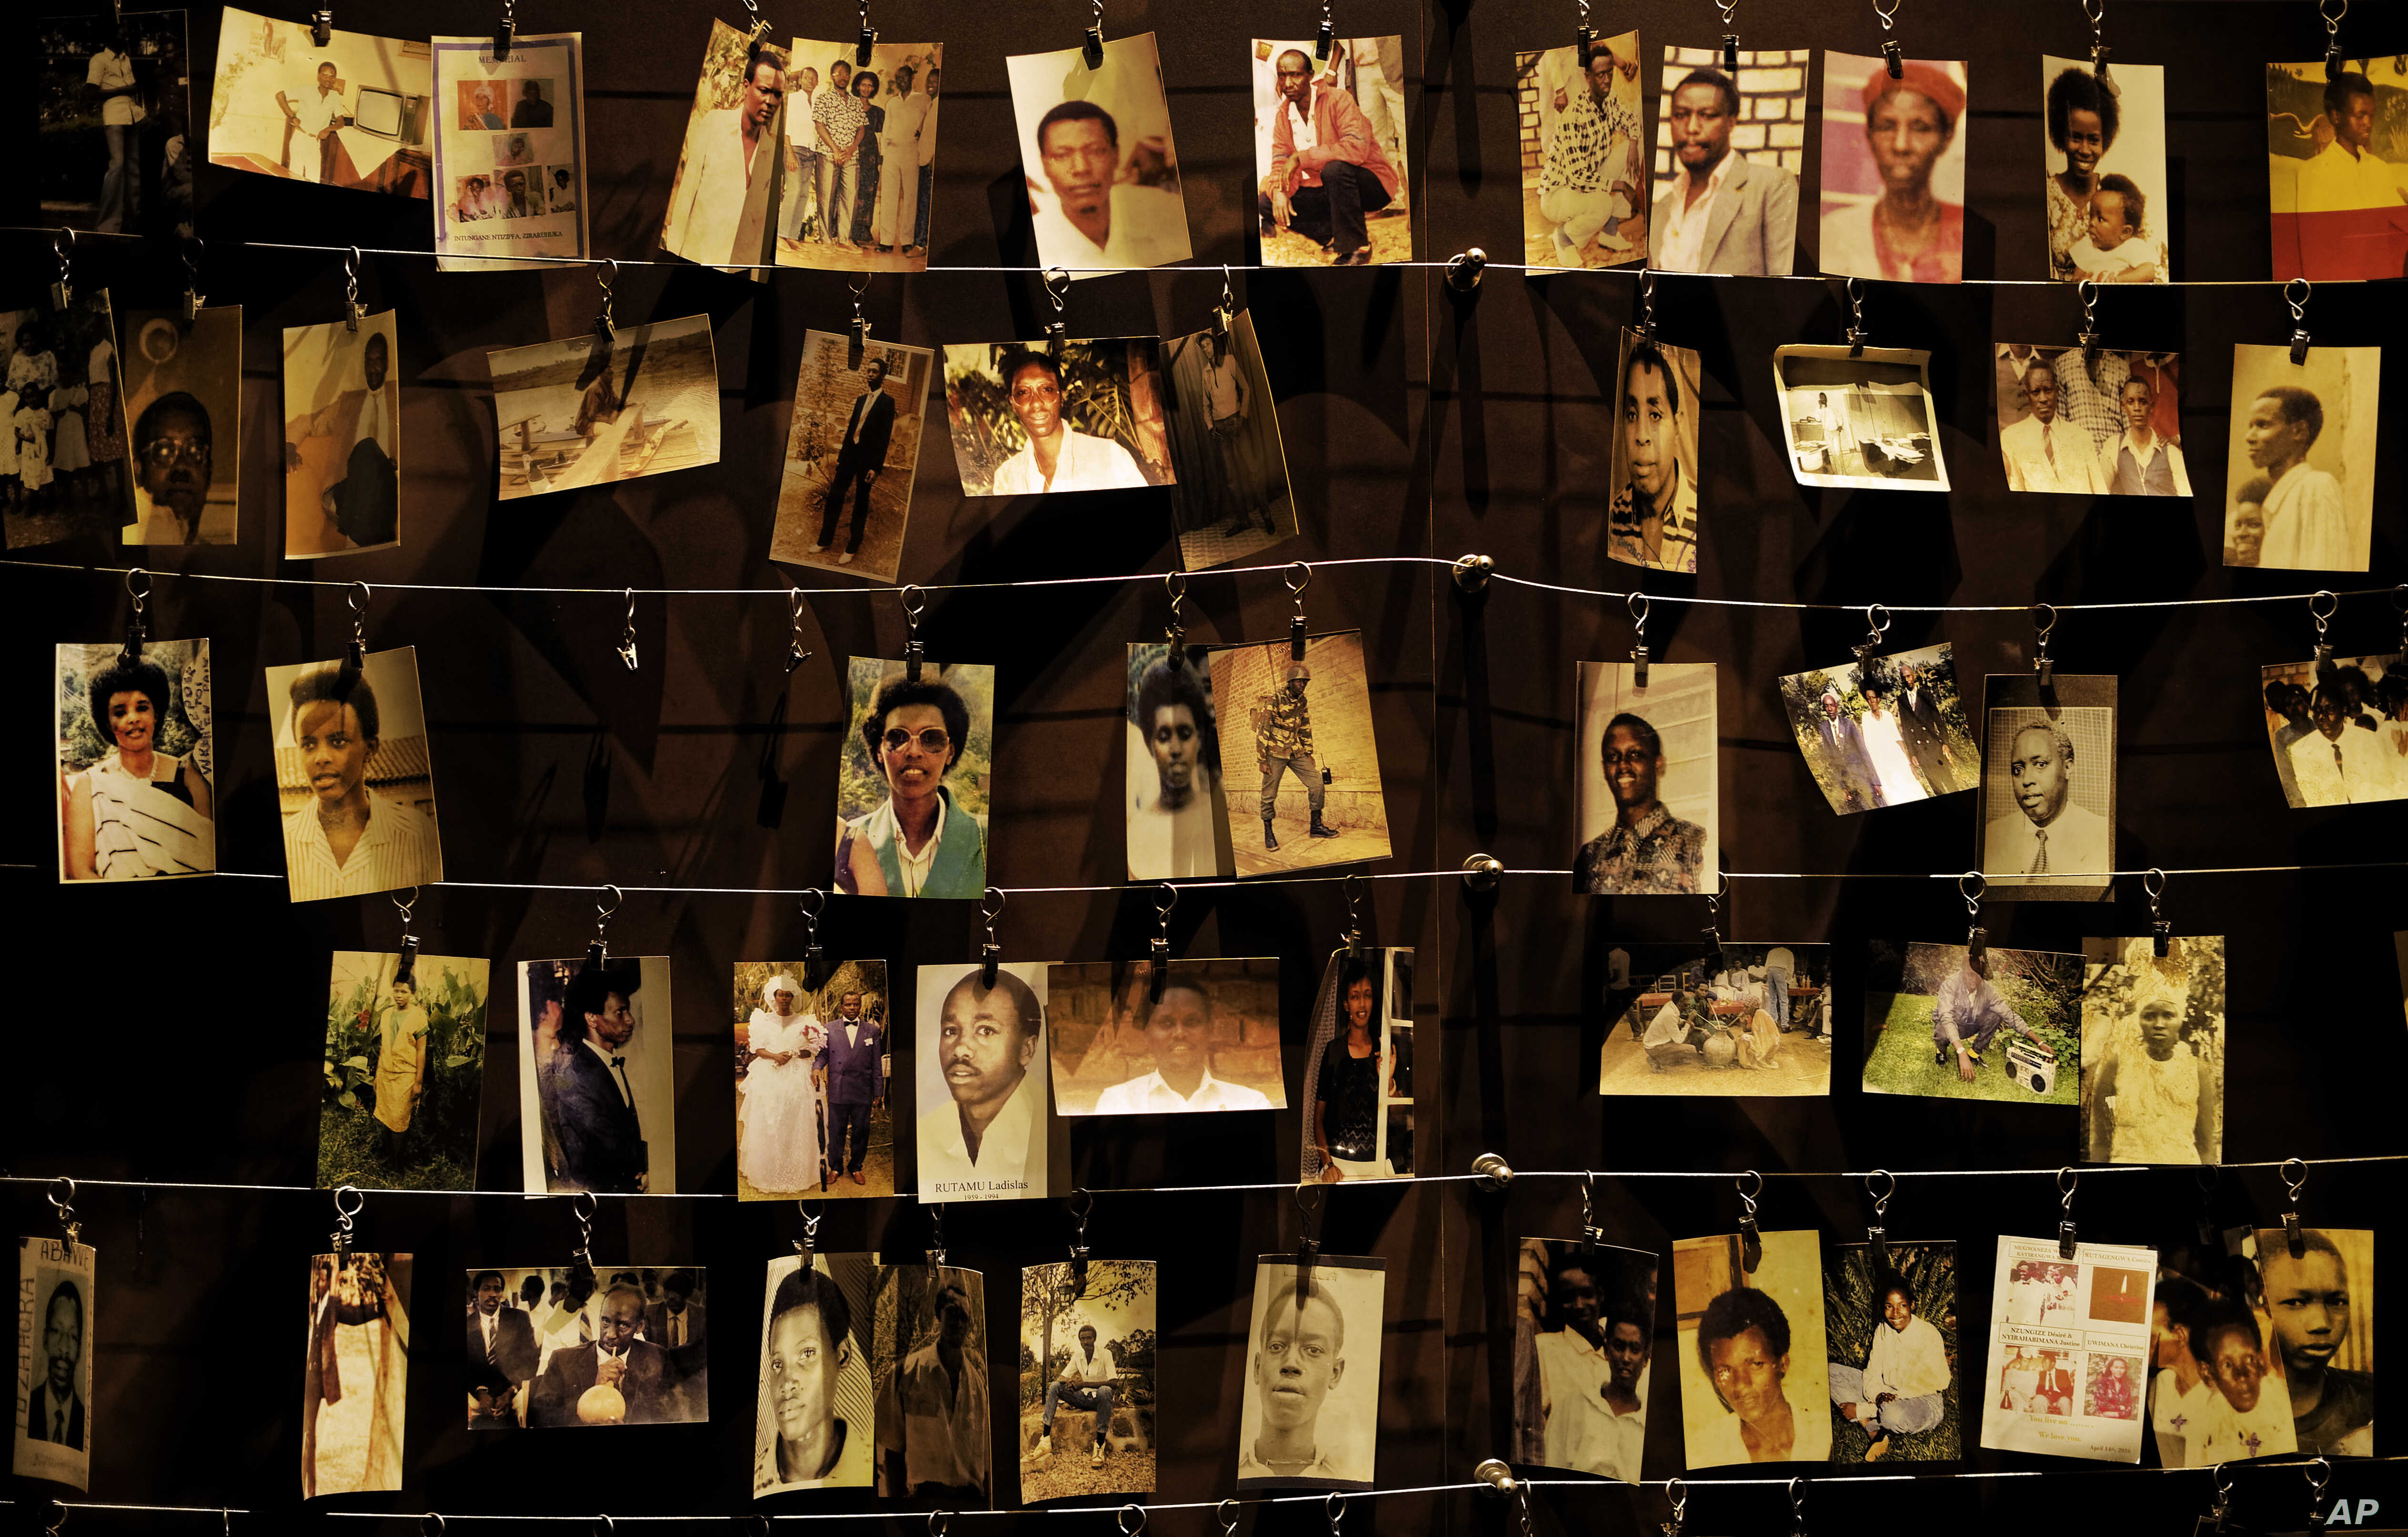 Family photographs of some of those who died hang on display in an exhibition at the Kigali Genocide Memorial centre in the capital Kigali, Rwanda, April 5, 2019.